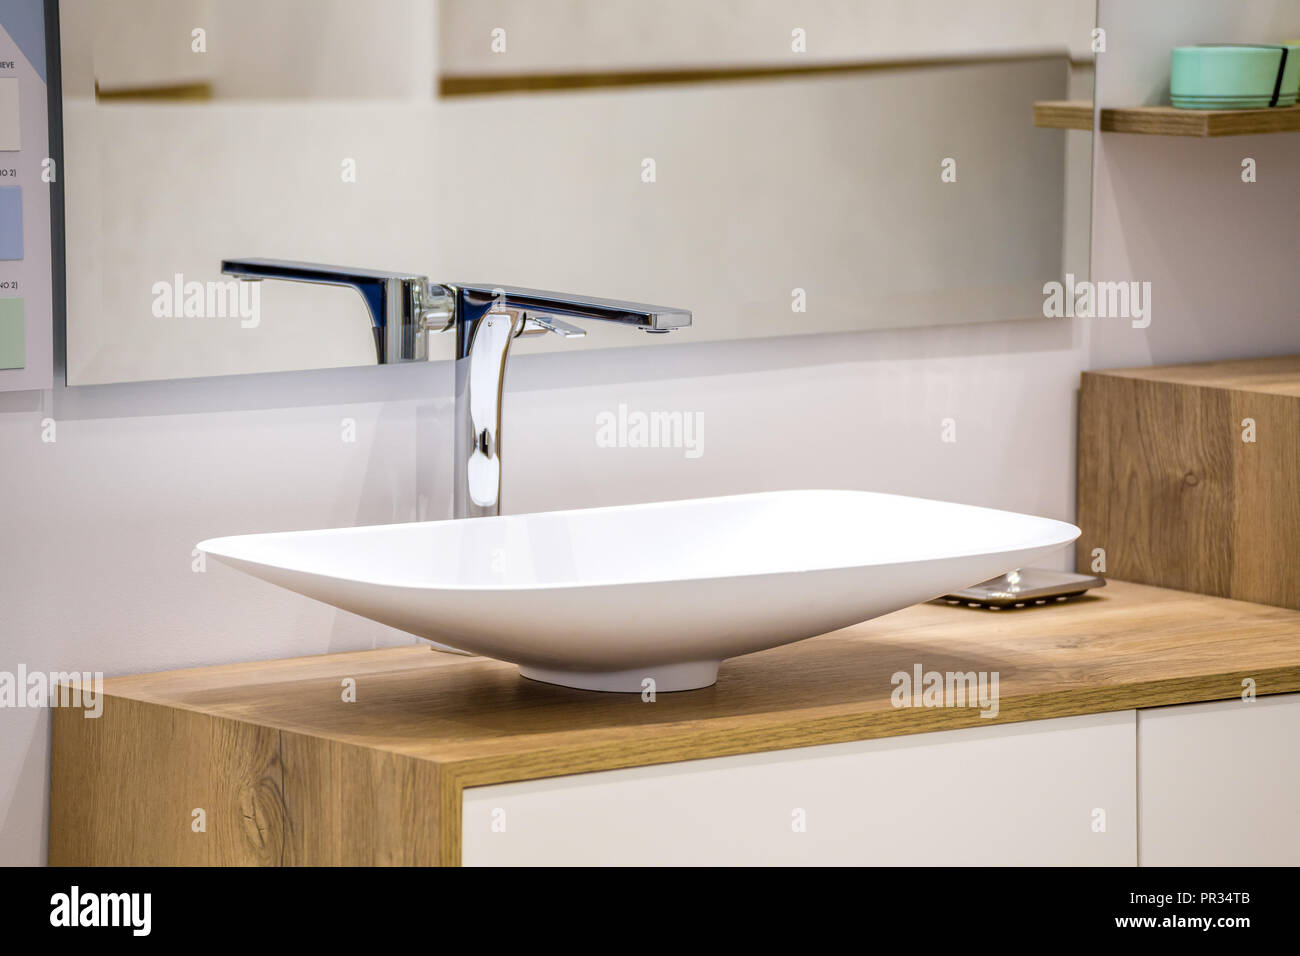 Chrome Faucet And White Sink On Wooden Vanity Top Stock Photo Alamy